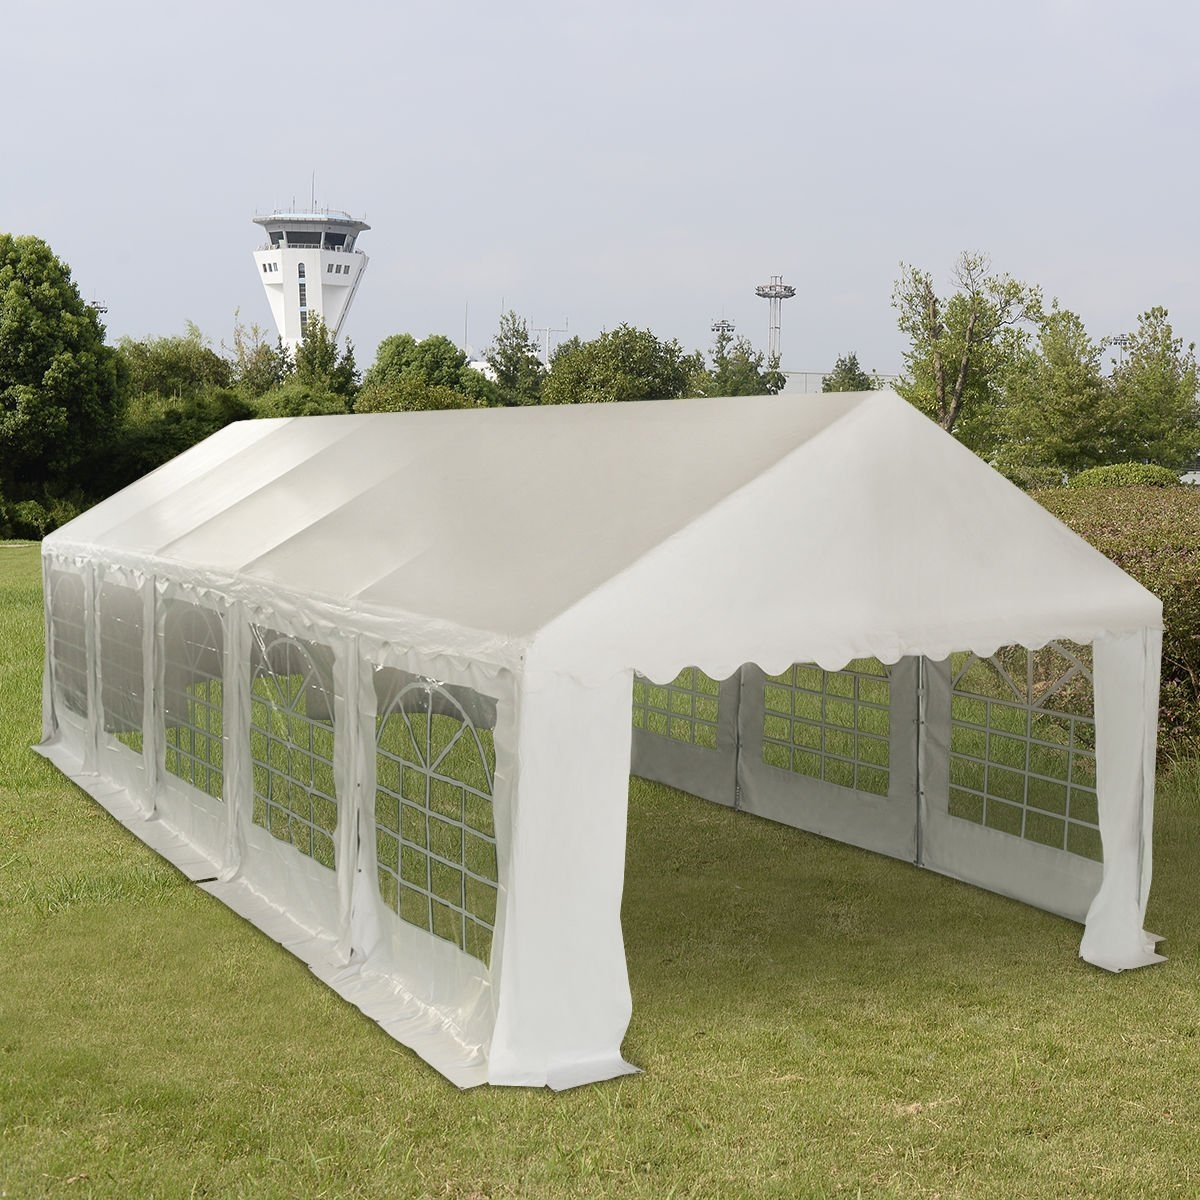 New 13'X32' Wedding Tent Shelter Heavy Duty Outdoor Party Canopy Carport White by MTN Gearsmith